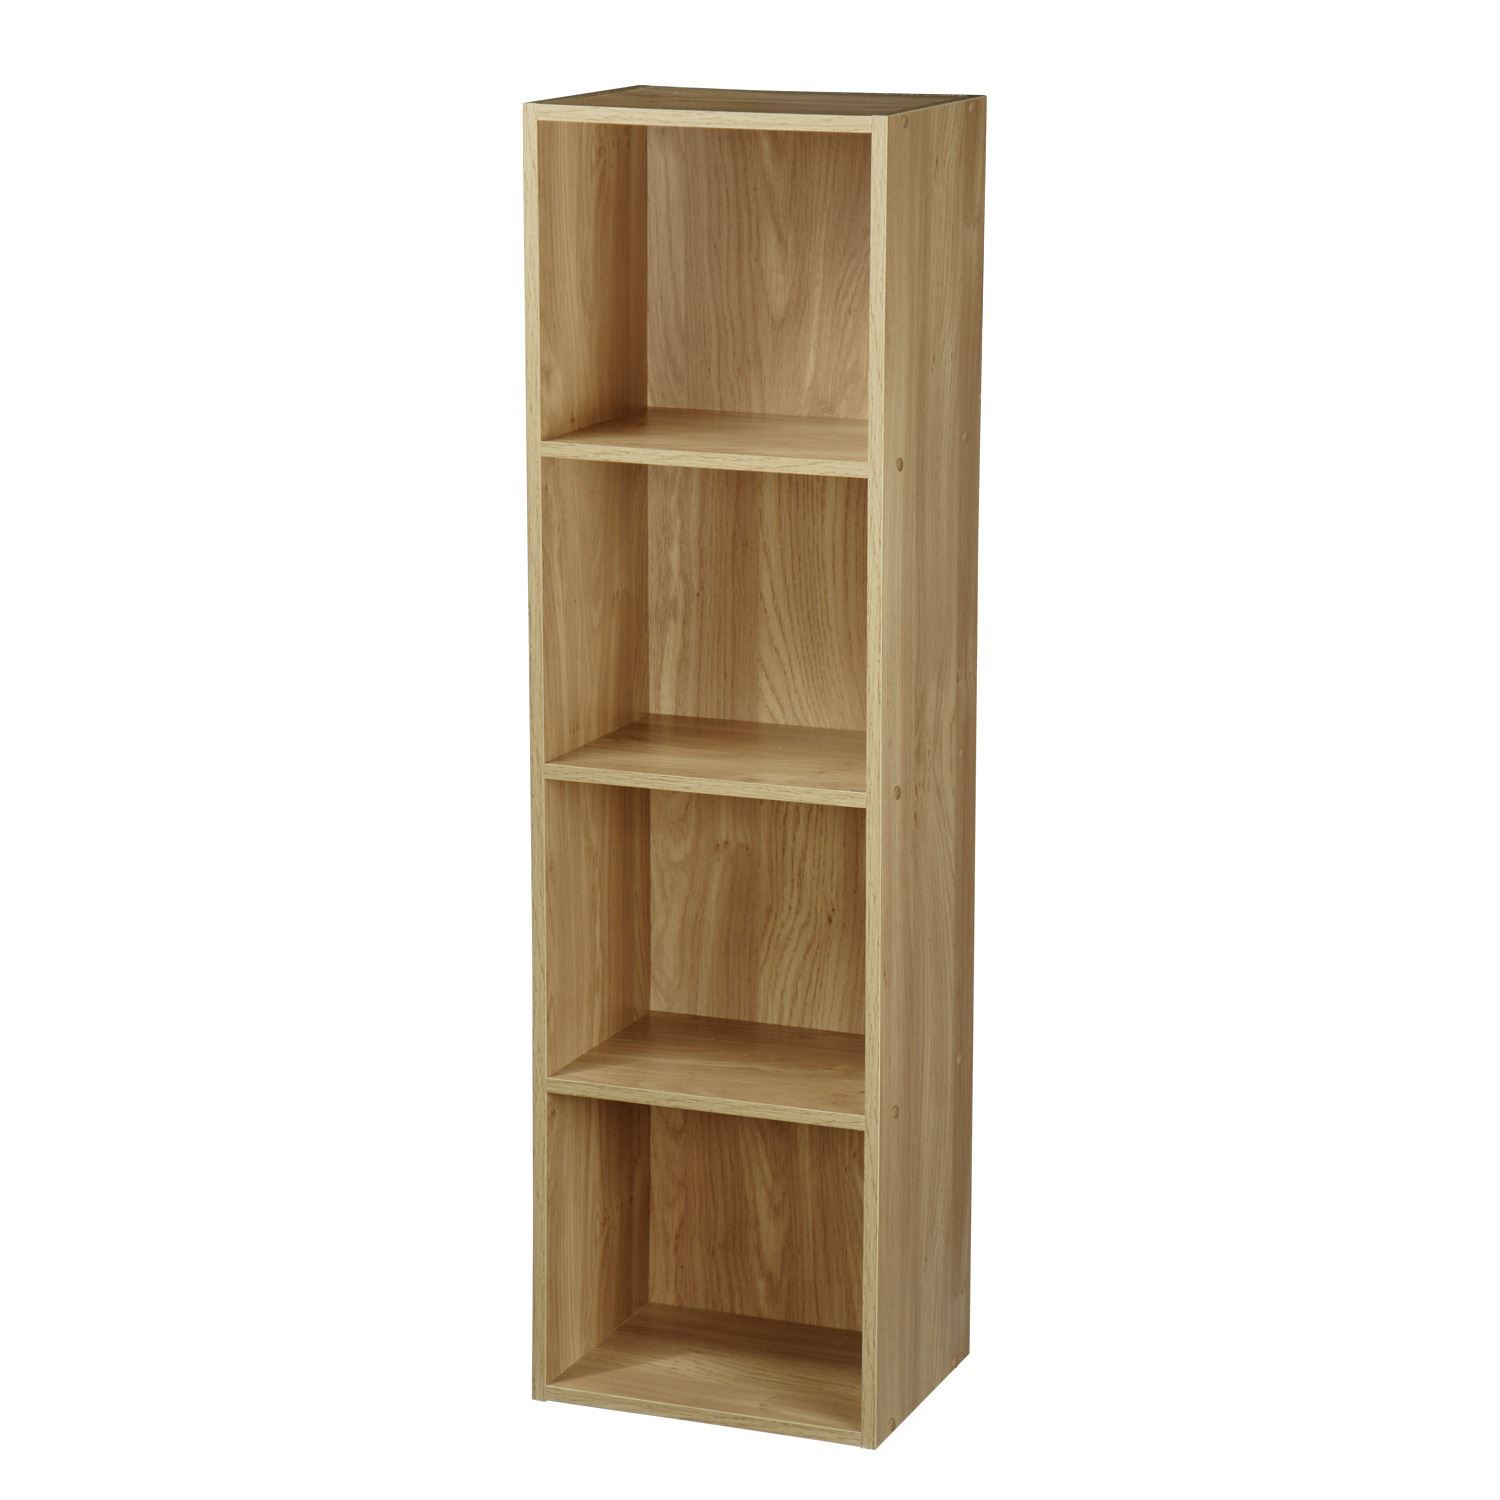 2 4 tier wooden bookcase shelving bookshelf storage for How to make display shelves